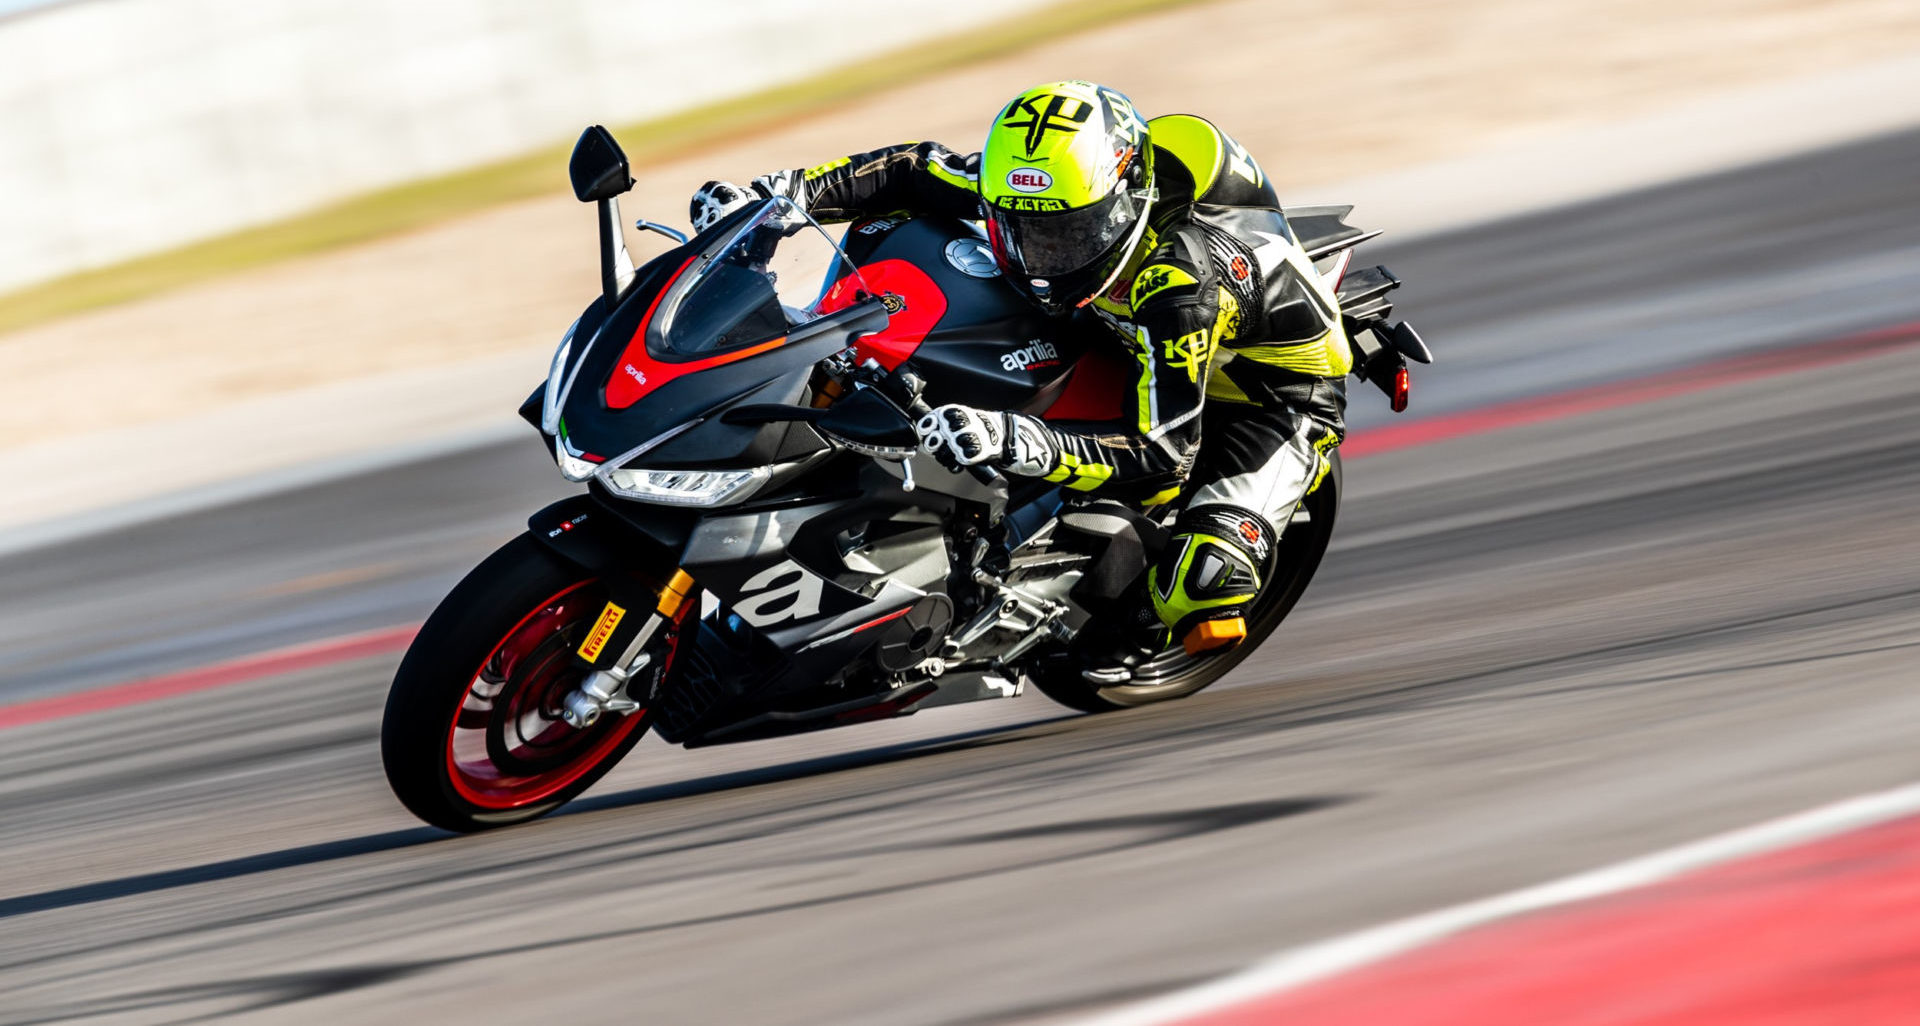 Kaleb De Keyrel is one of three riders Robem Engineering is fielding on the new Aprilia RS 660 in the 2021 MotoAmerica Twins Cup Championship. Photo courtesy Robem Engineering.